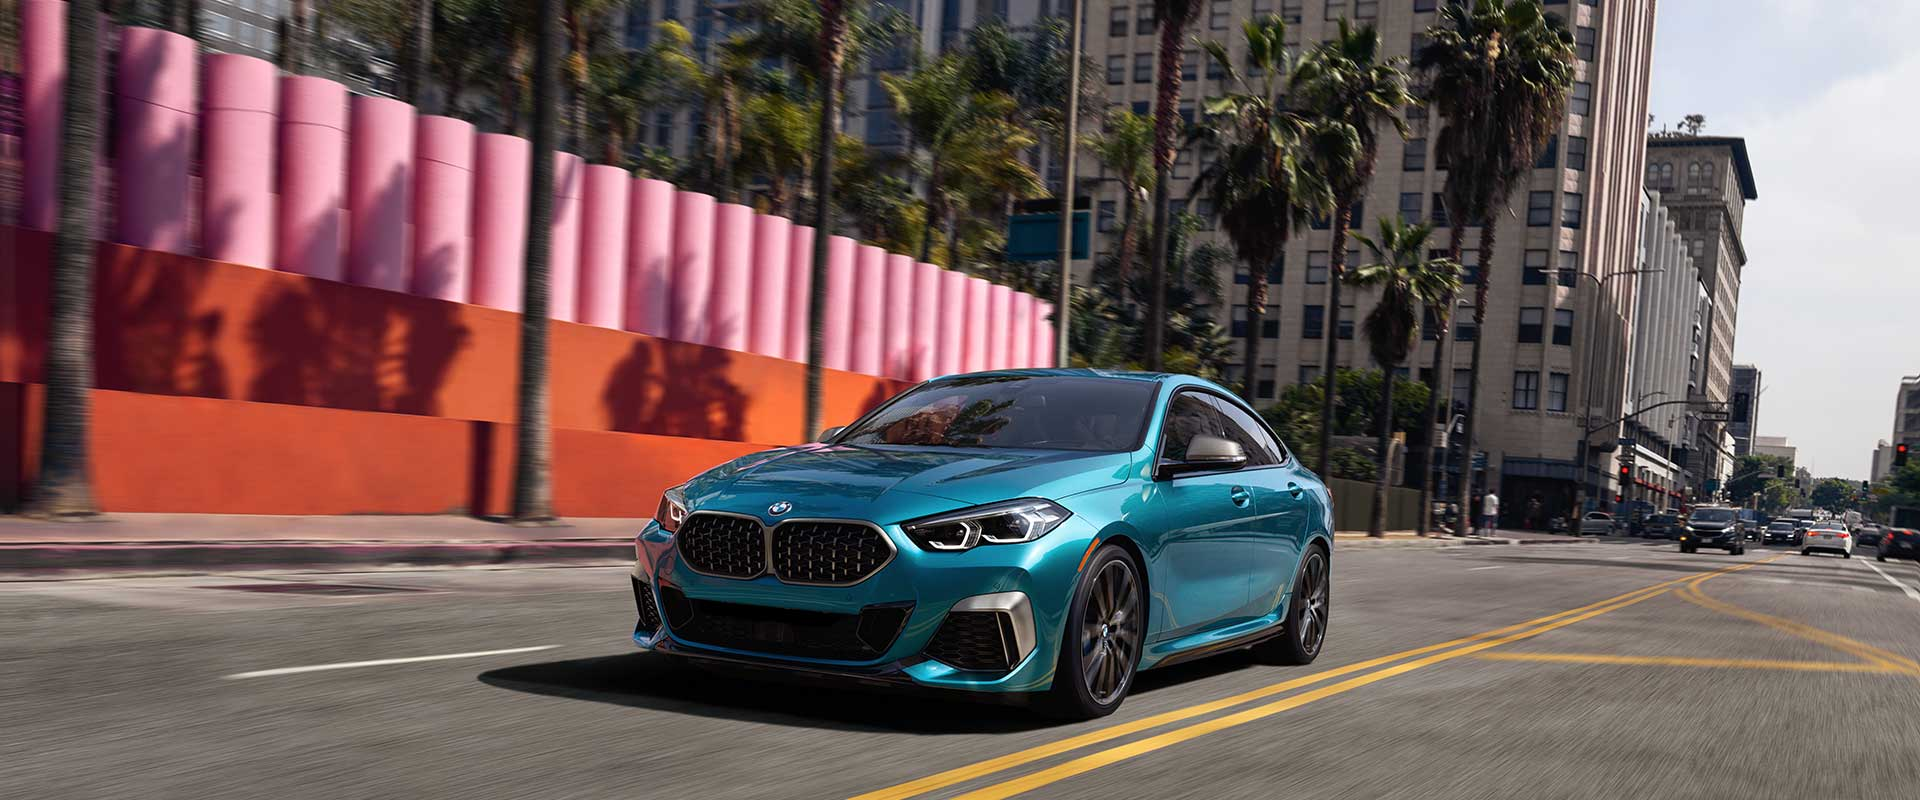 A blue metallic BMW 2 Series Gran Coupe driving down street during the day.